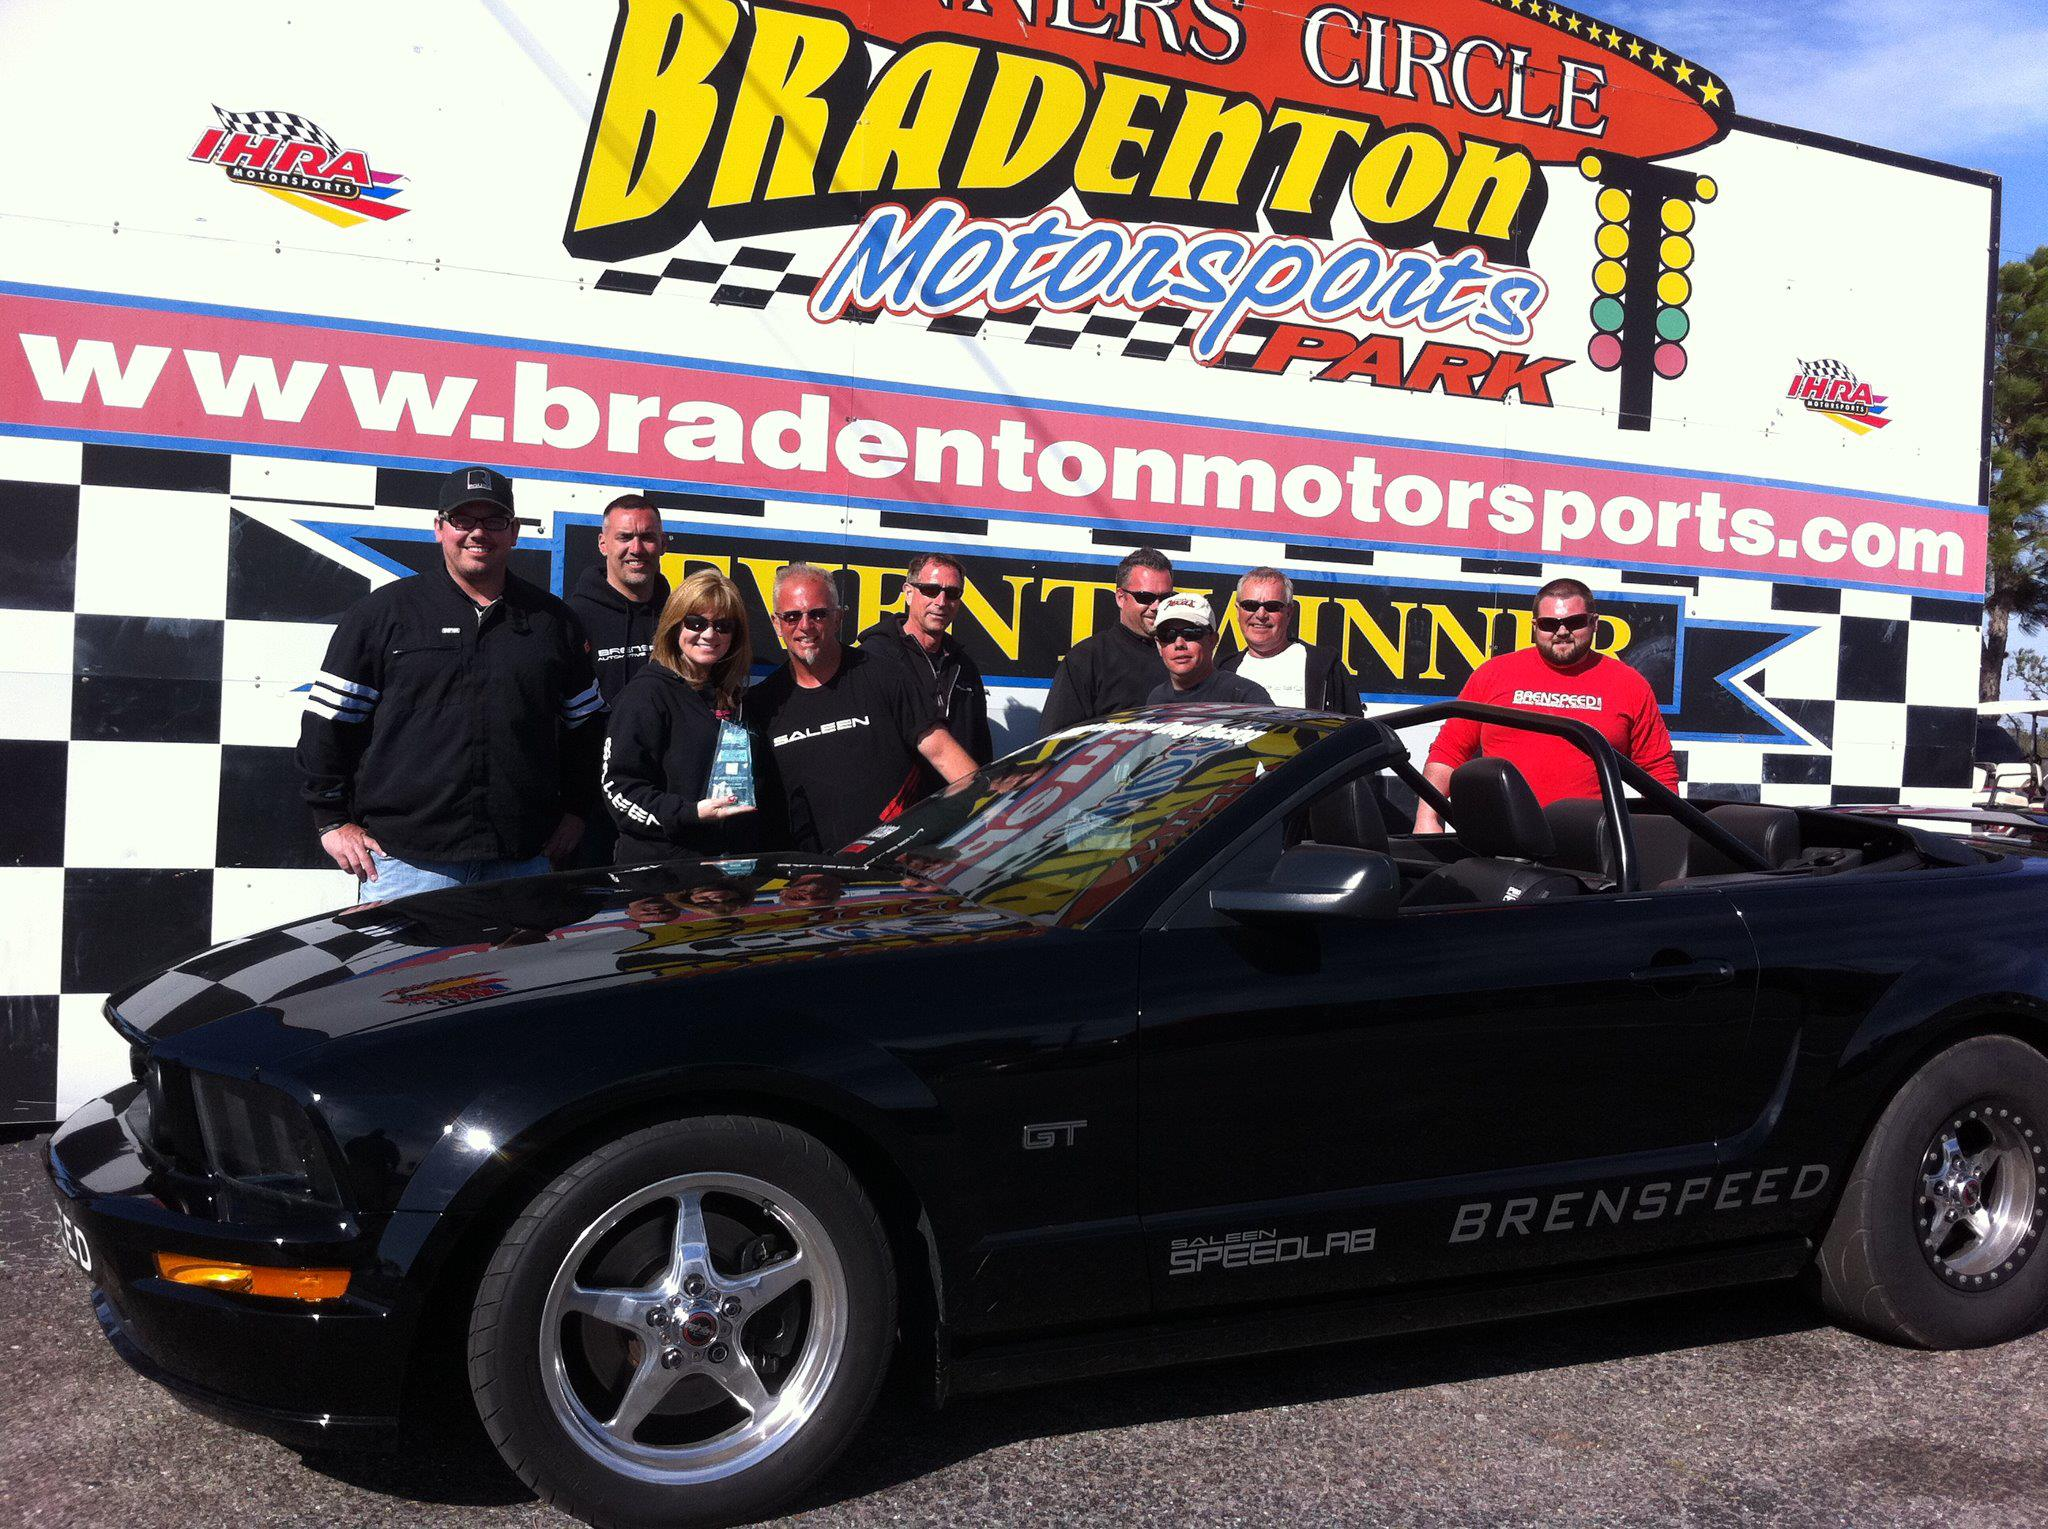 Kent Nine and the Brenspeed Team take class win at NMRA Spring Break Shootout